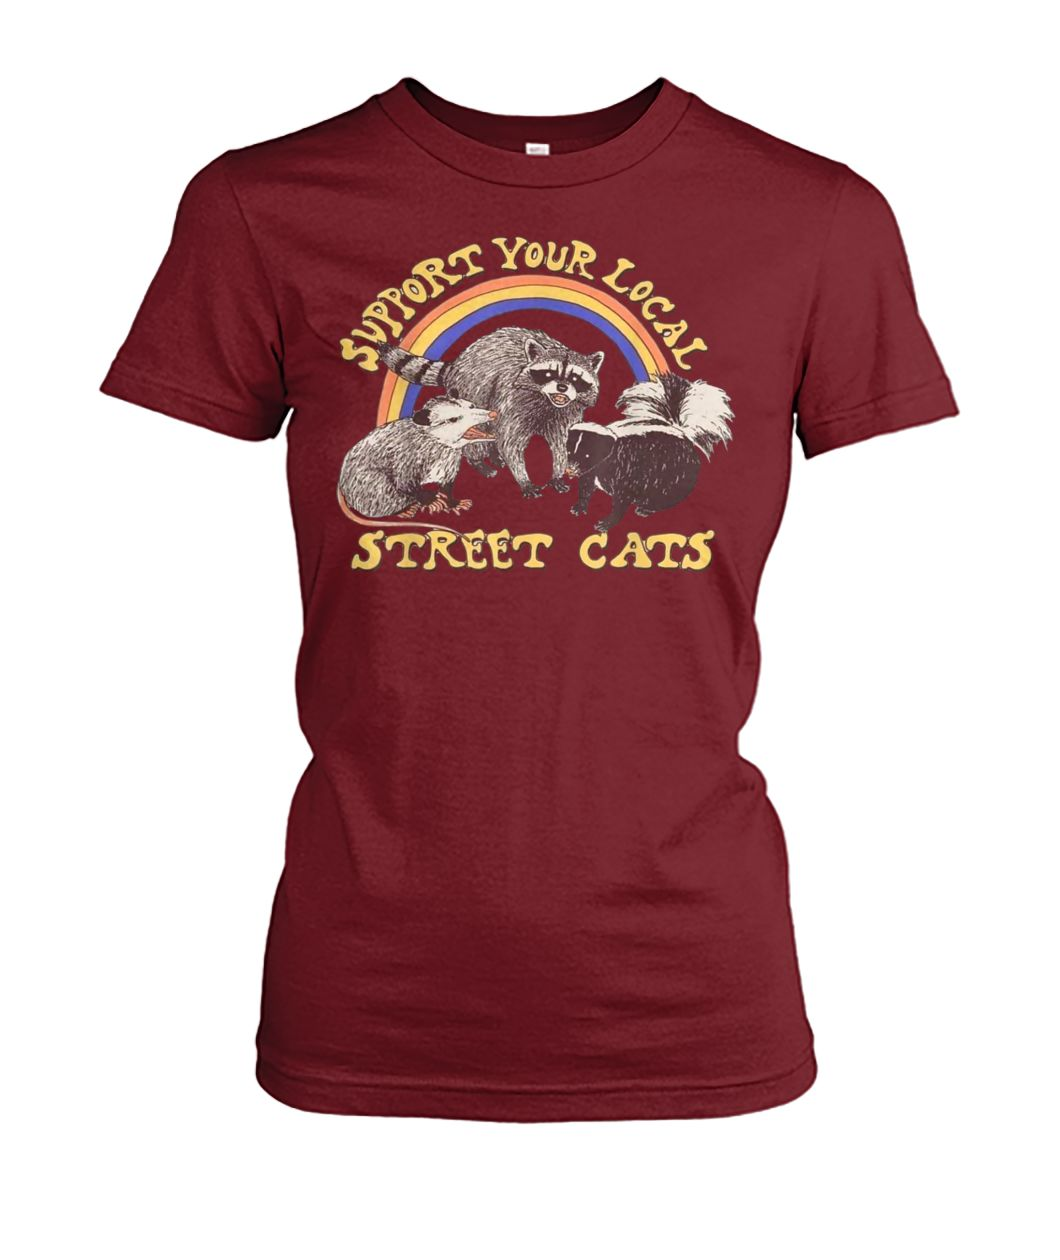 [Hot version] Support your local street cats shirt